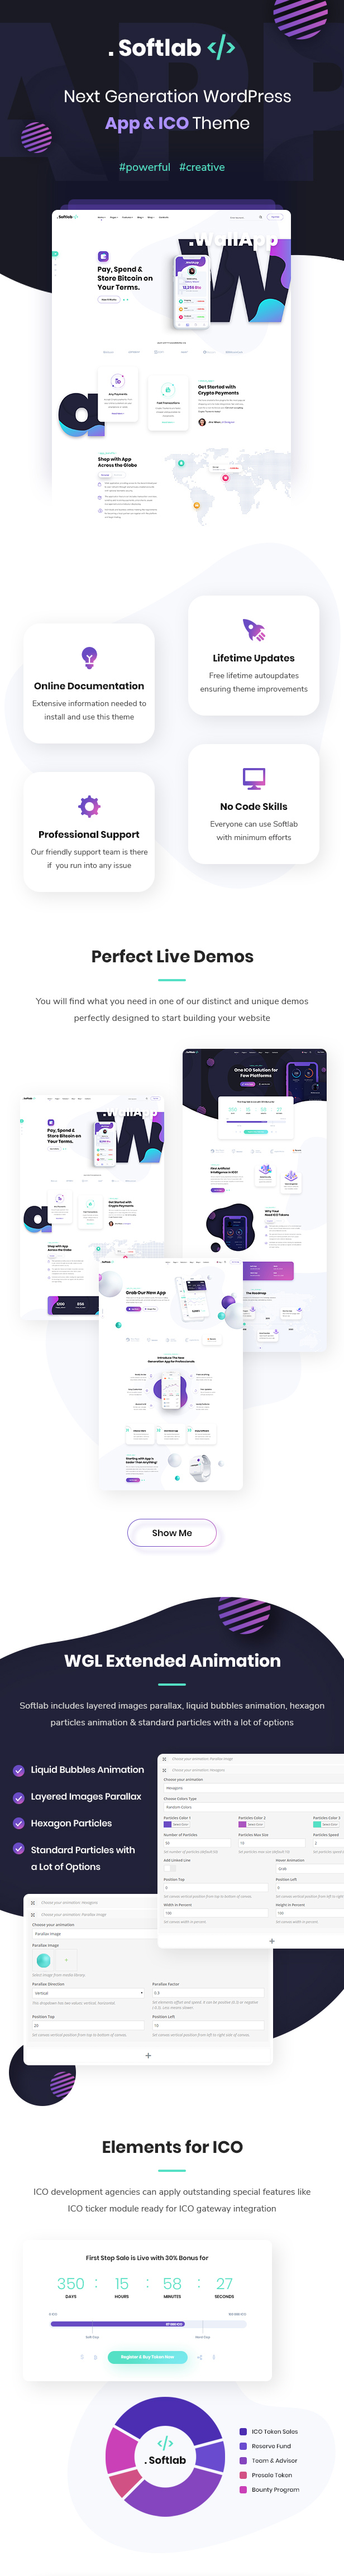 Softlab - Startup and App WordPress Theme - 1